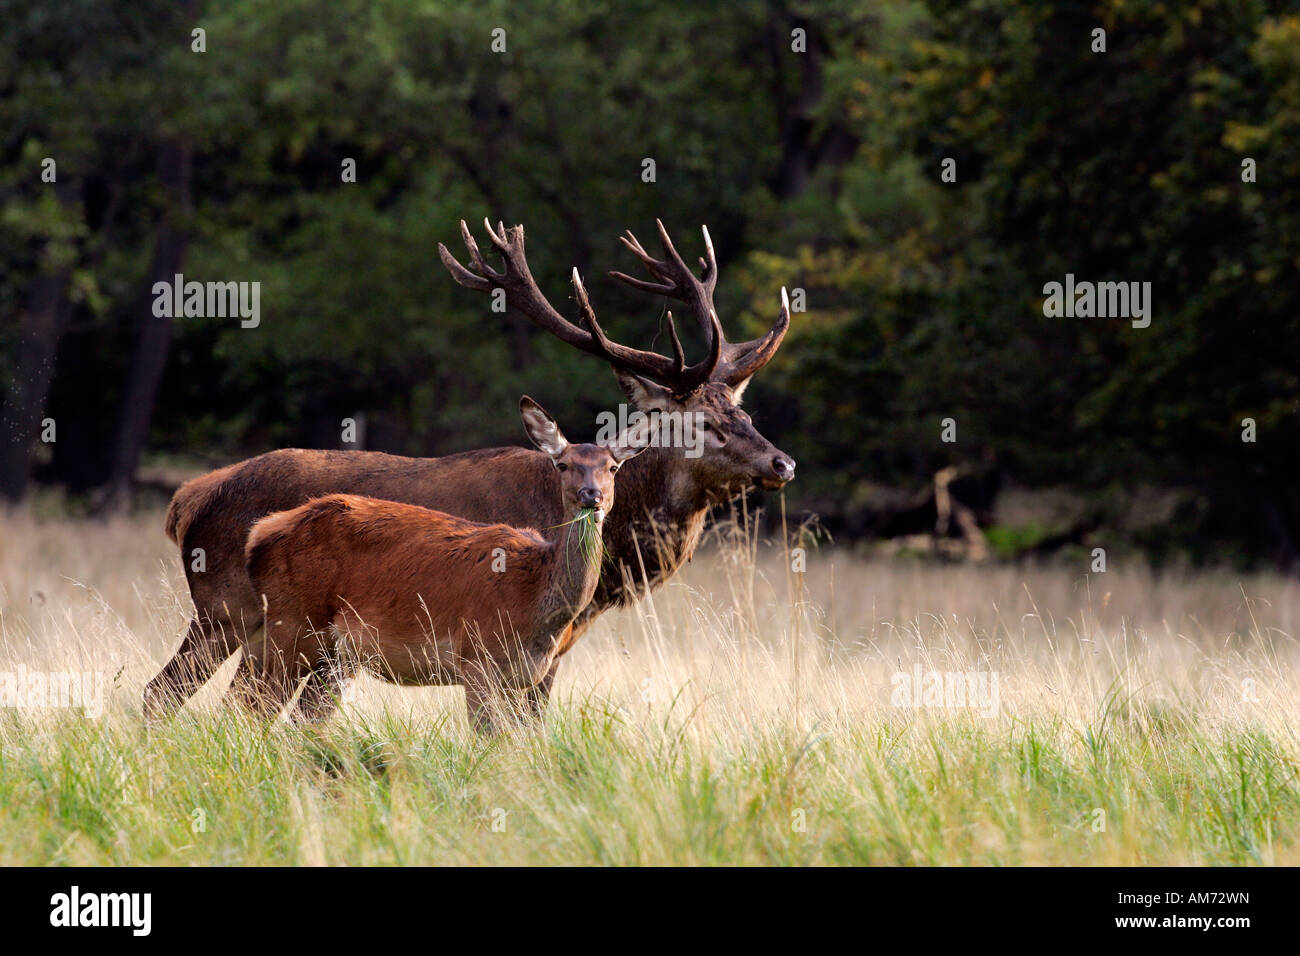 Red stag and hind during the rut - red deers in heat - behaviour - male and female (Cervus elaphus) Stock Photo